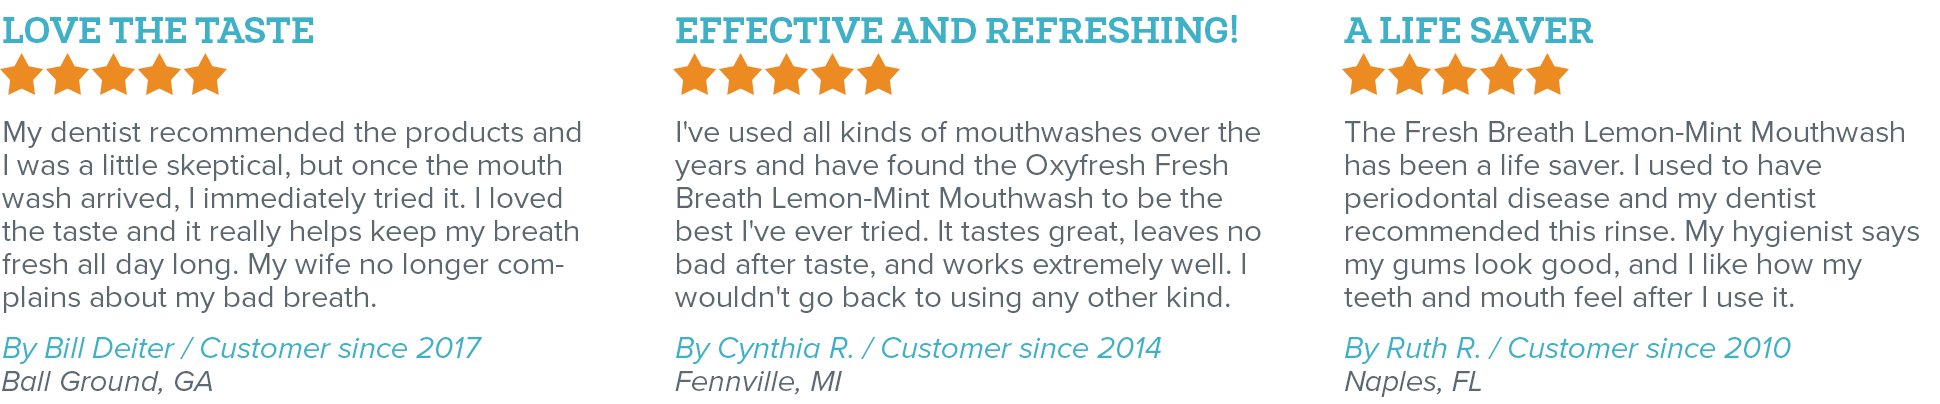 Oxyfresh - Eliminate Bad Breath - Fresh Breath Lemon Mint Mouthwash Reviews